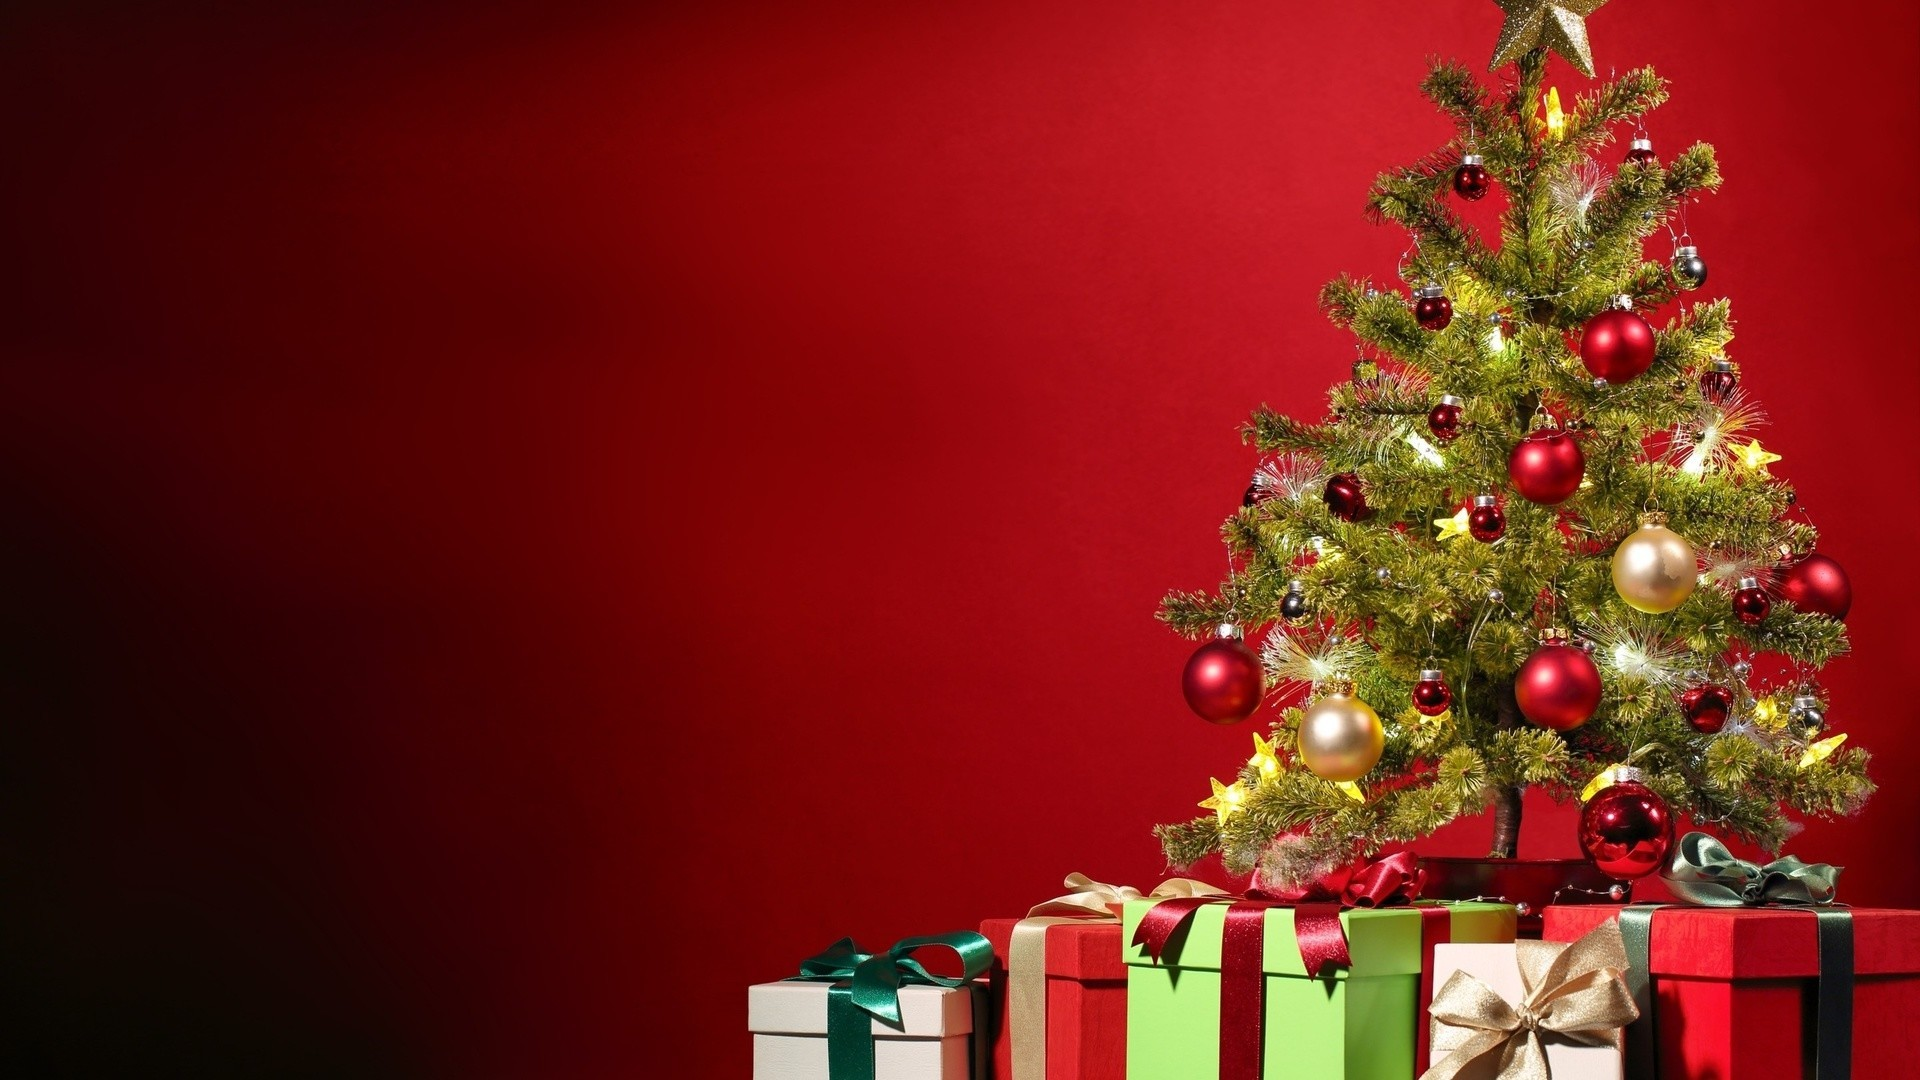 Merry Christmas Background 2015 Merry Christmas Backgrounds Free #3519